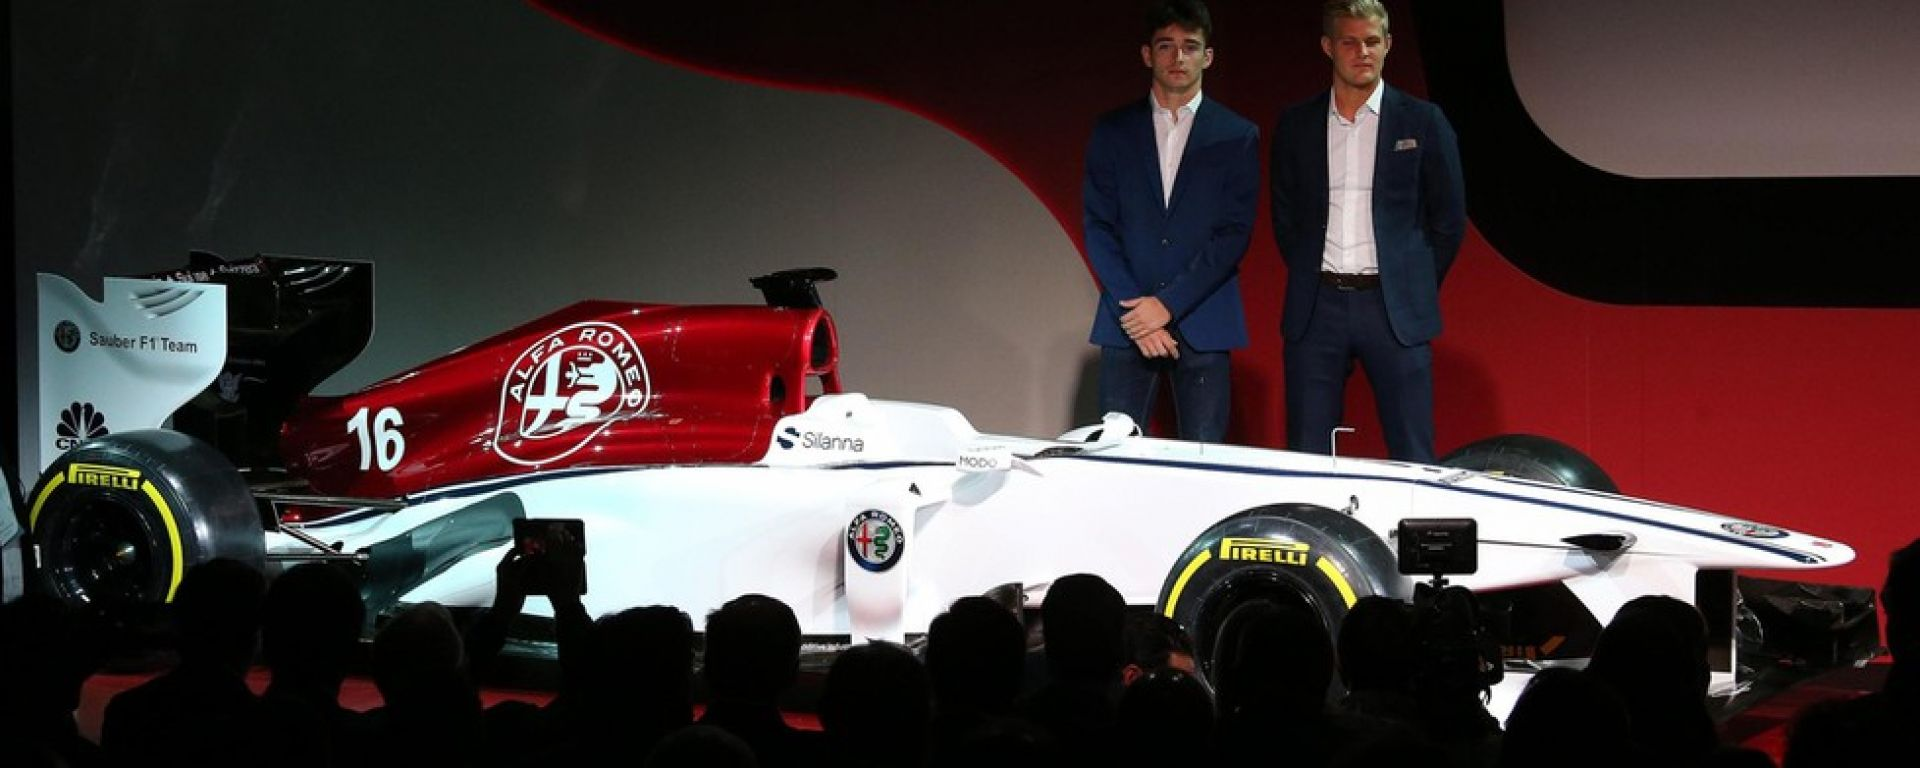 presentazione alfa romeo sauber f1 team racing orari dove vederla motorbox. Black Bedroom Furniture Sets. Home Design Ideas